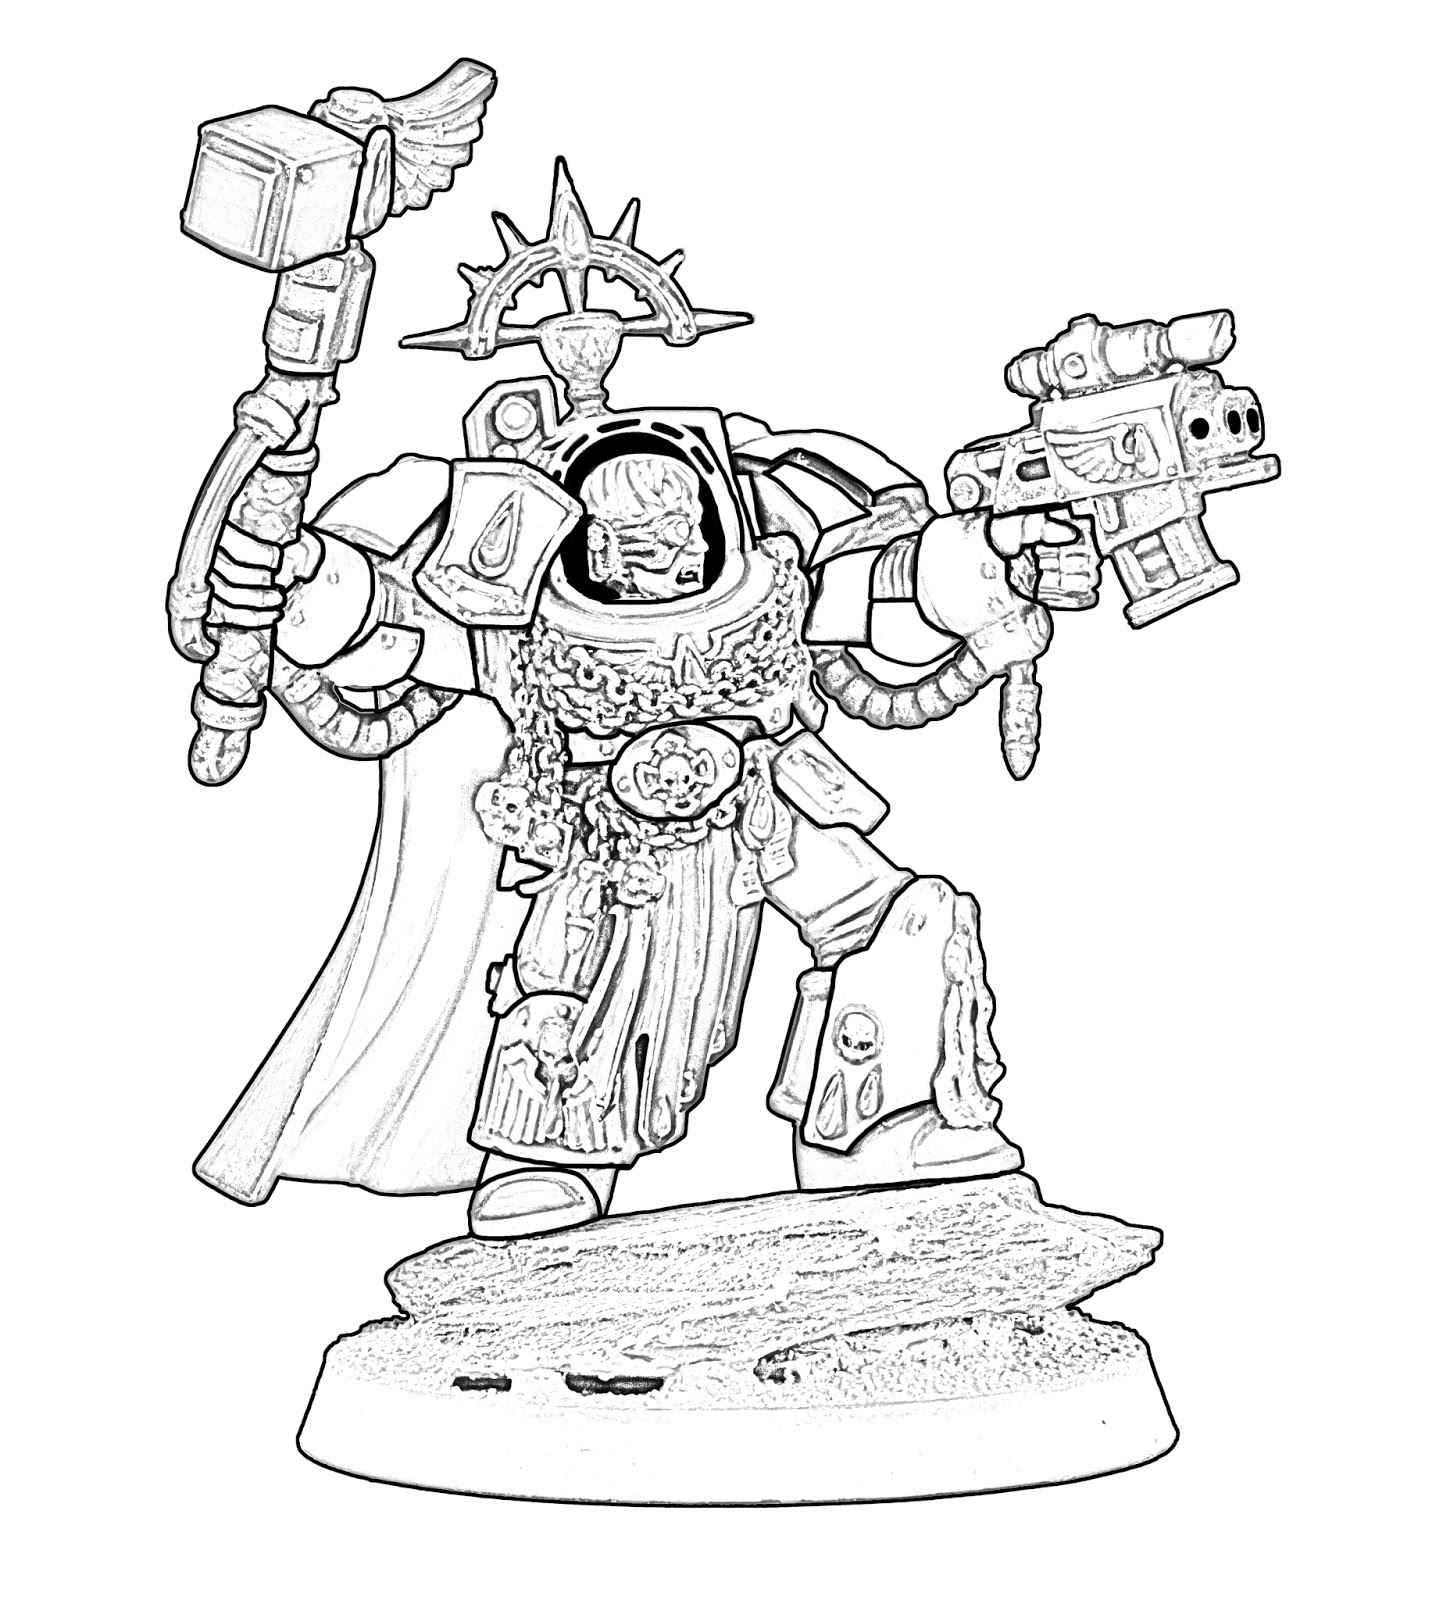 Warhammer 40k Coloring Pages Coloring Pages